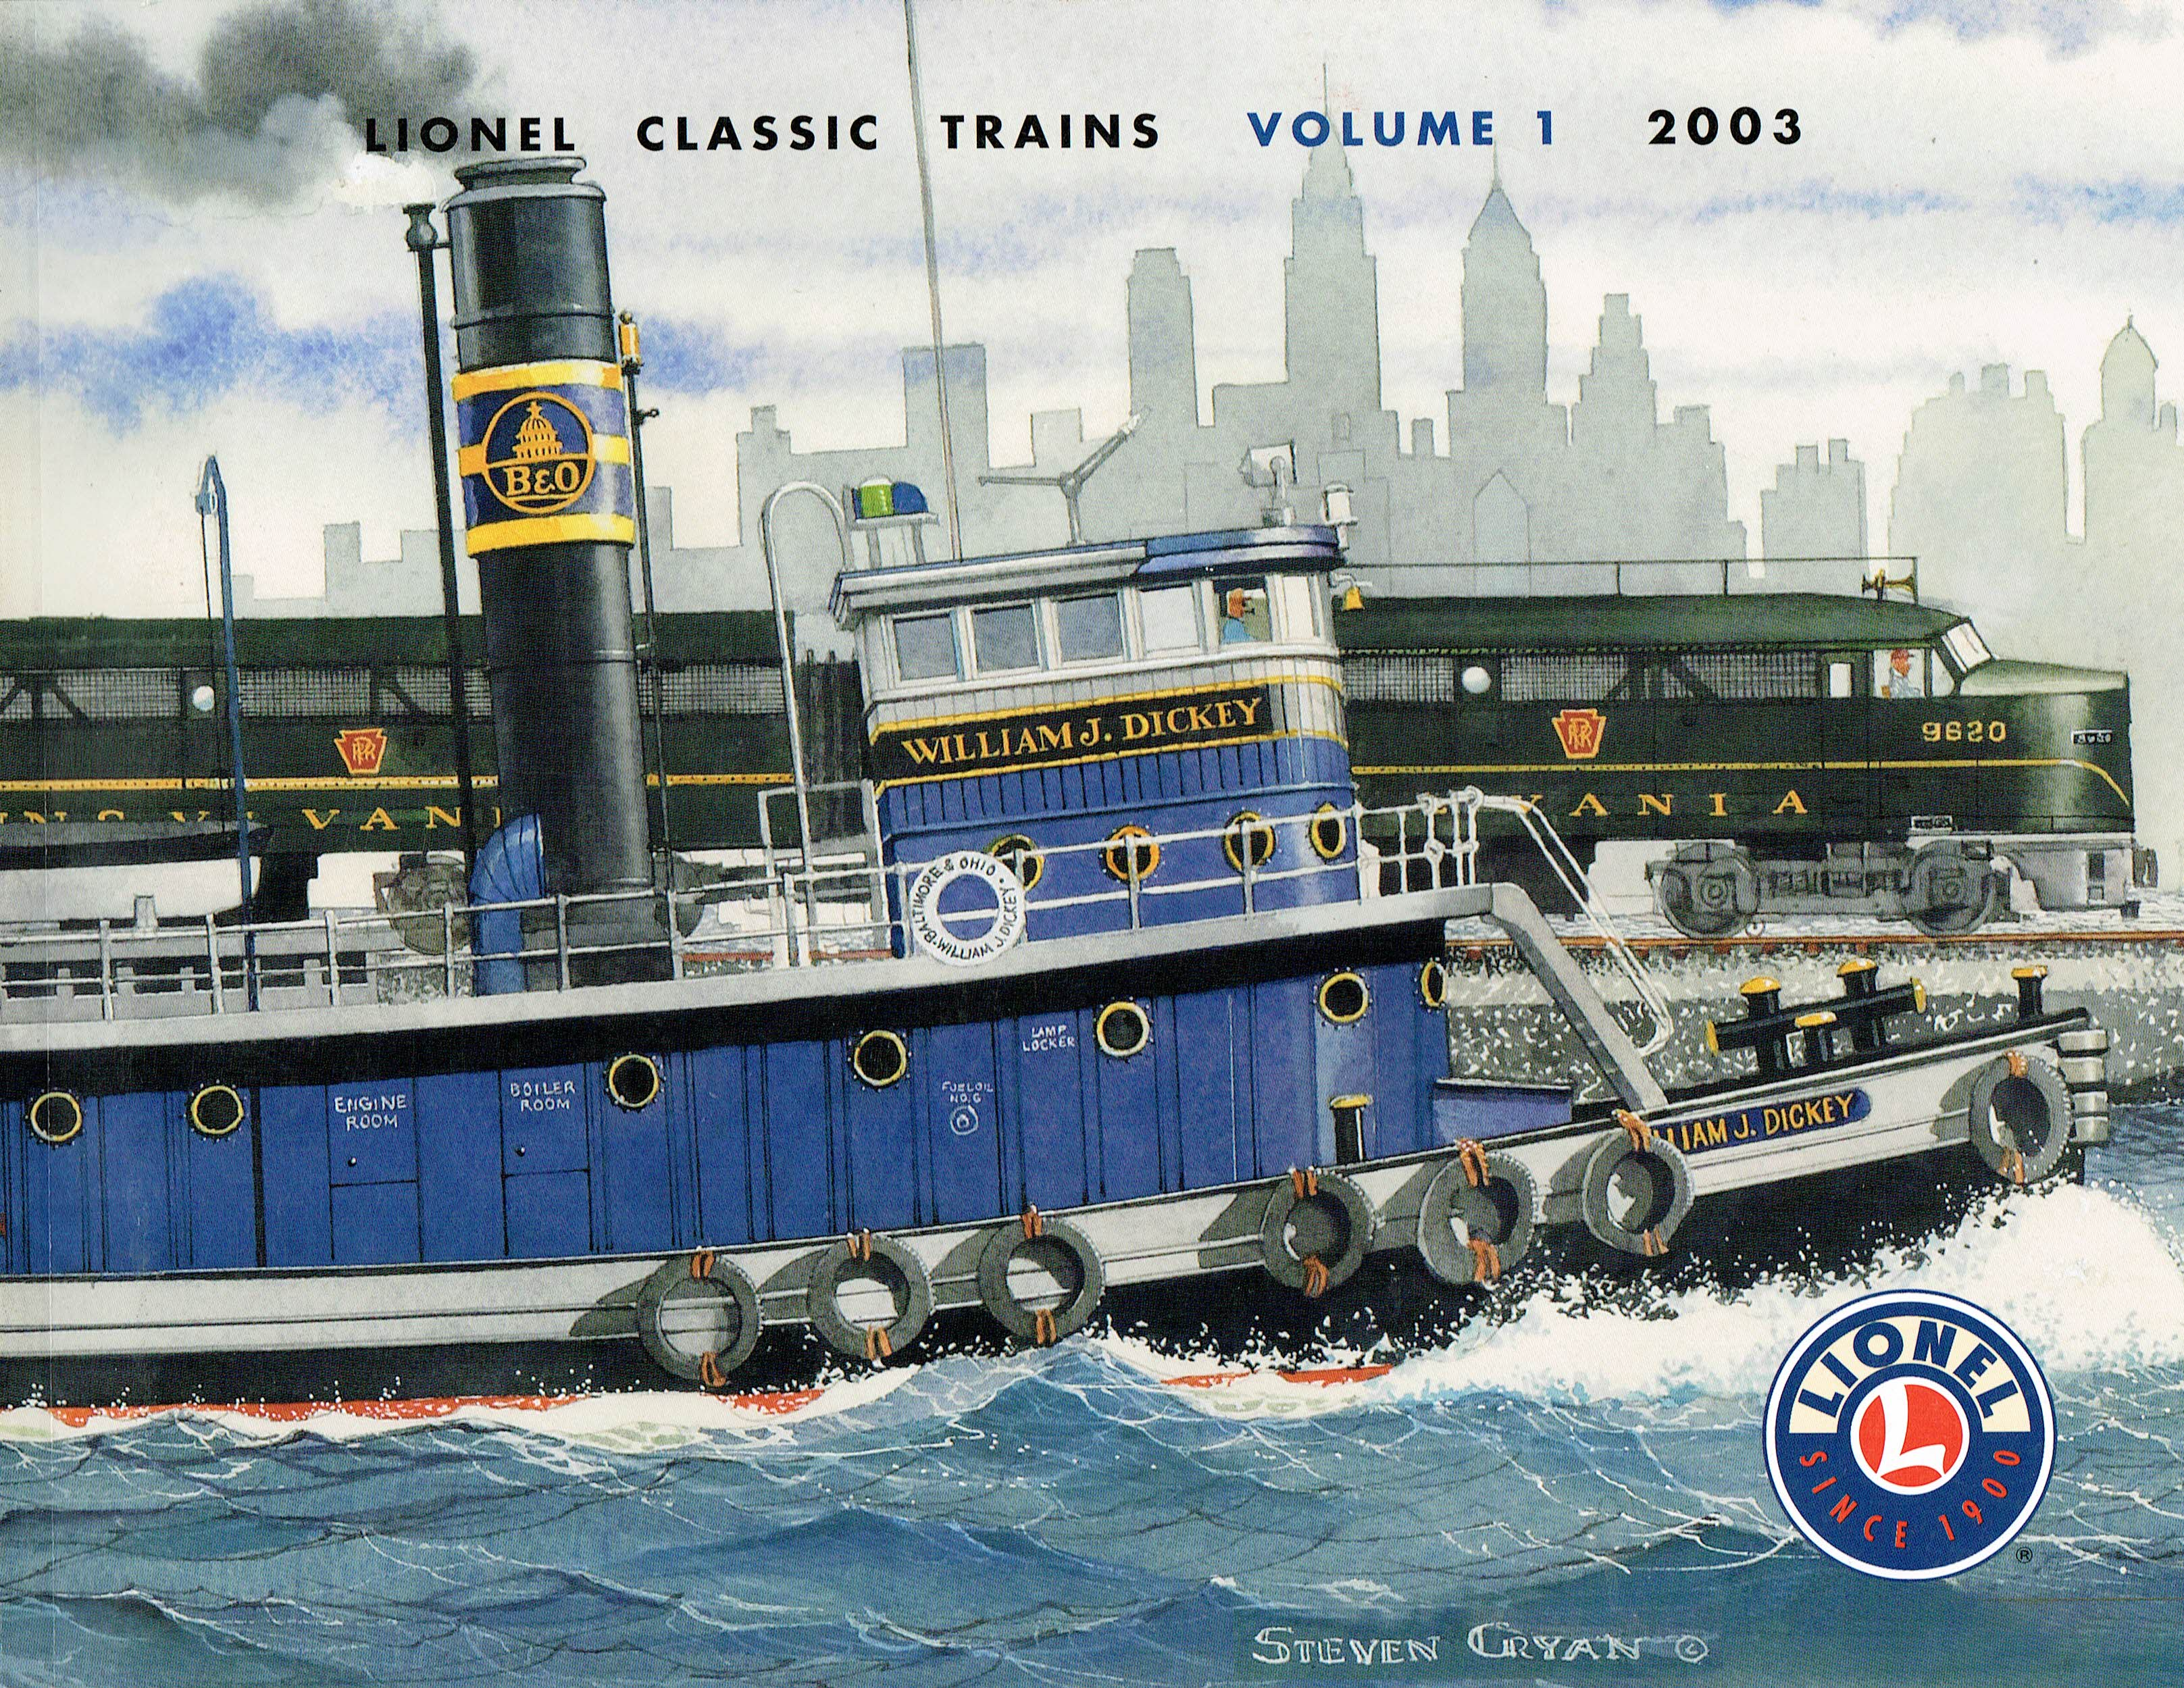 Lionel 2003 Classic Trains Volume 1 Catalog image